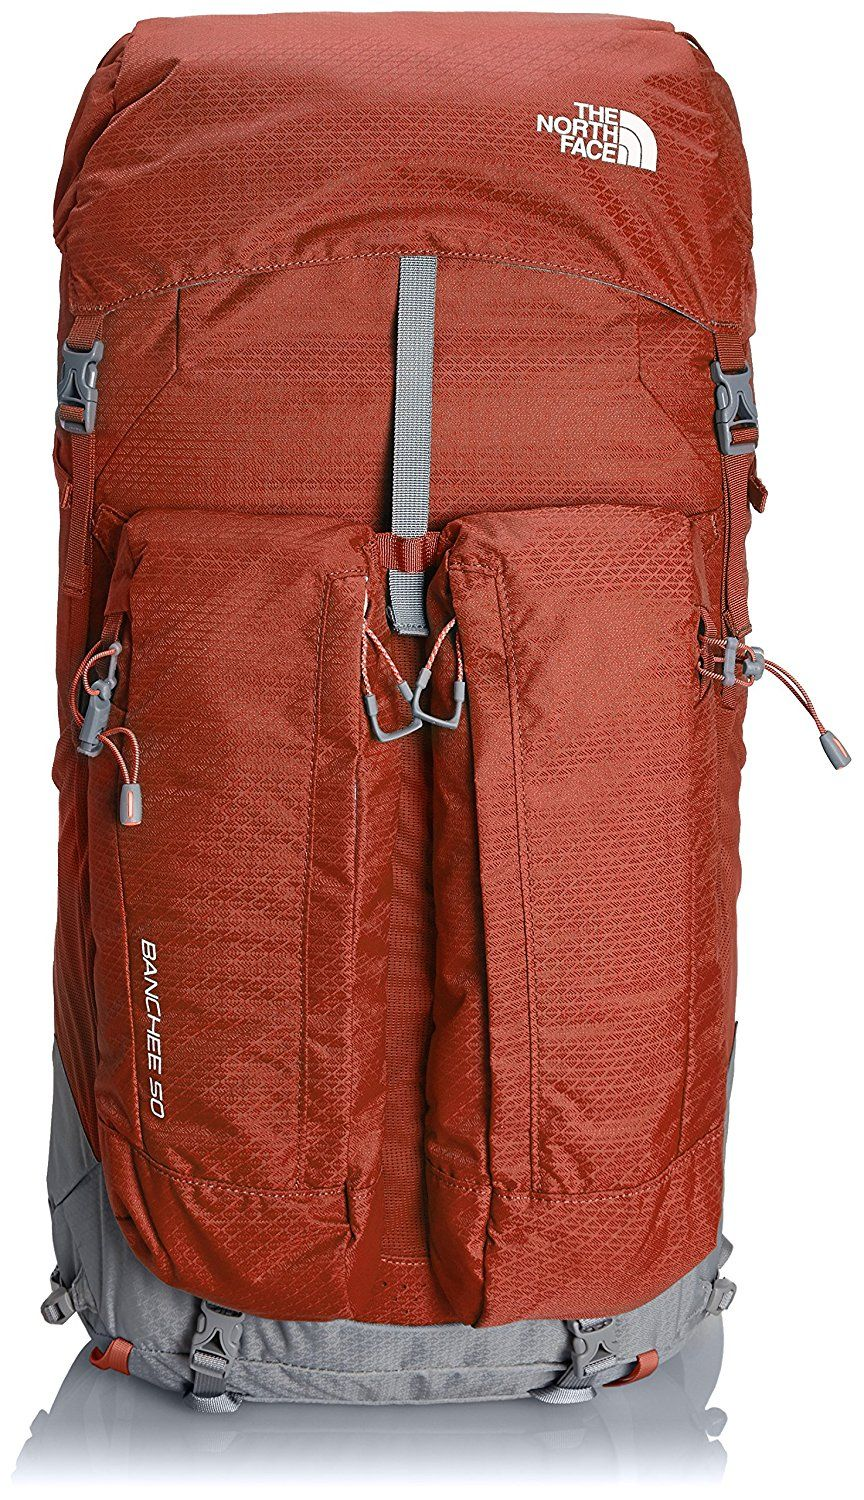 a223e3419 Banchee 50 Backpack ** For more information, visit now : backpacking ...